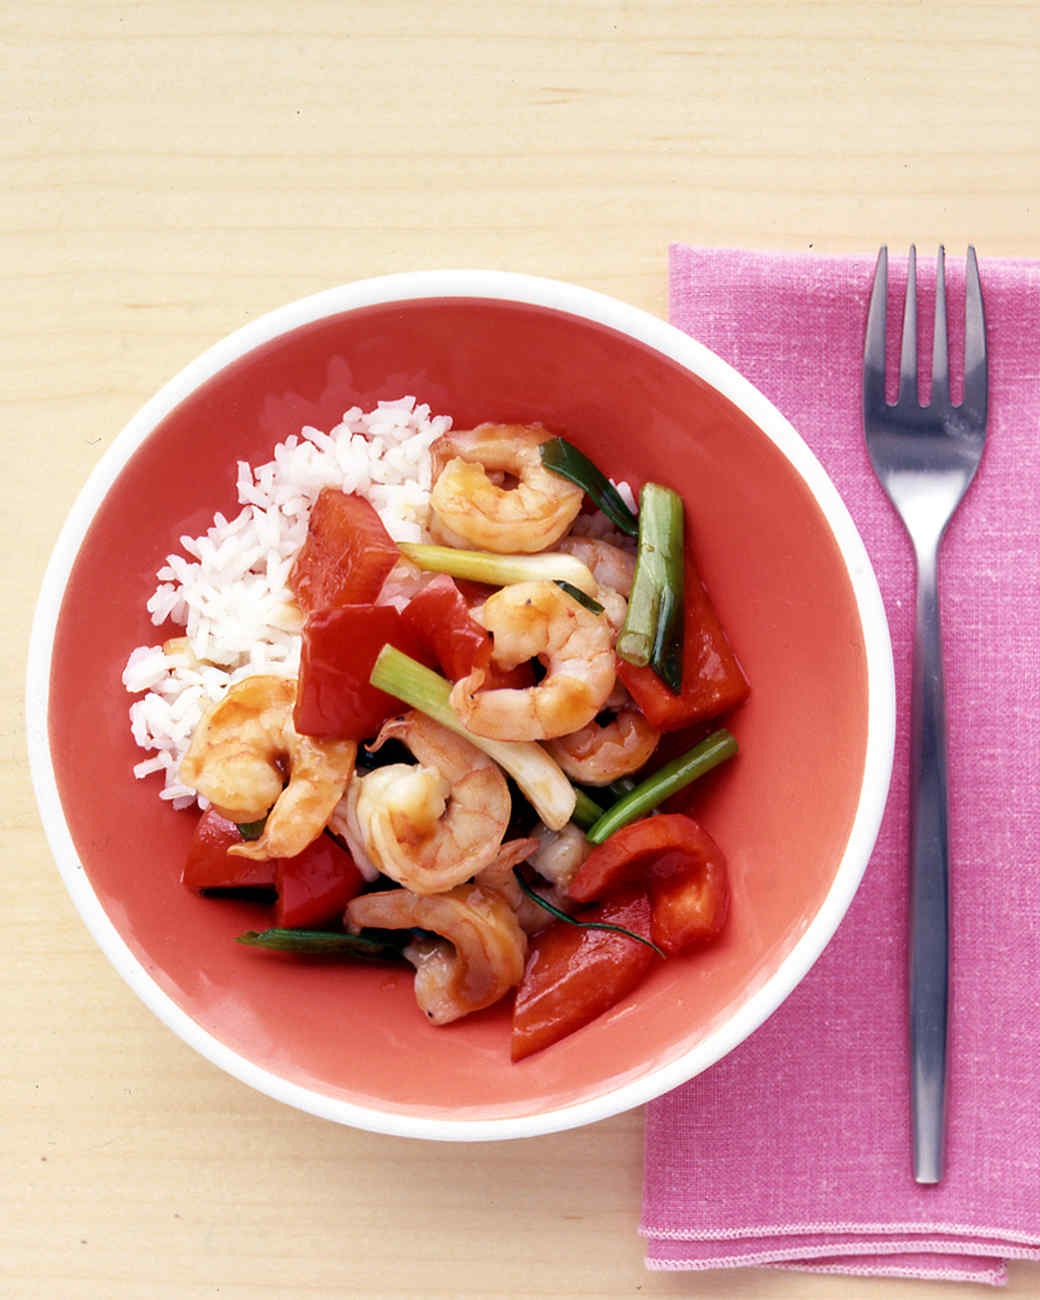 Shrimp and Ginger Stir-Fry